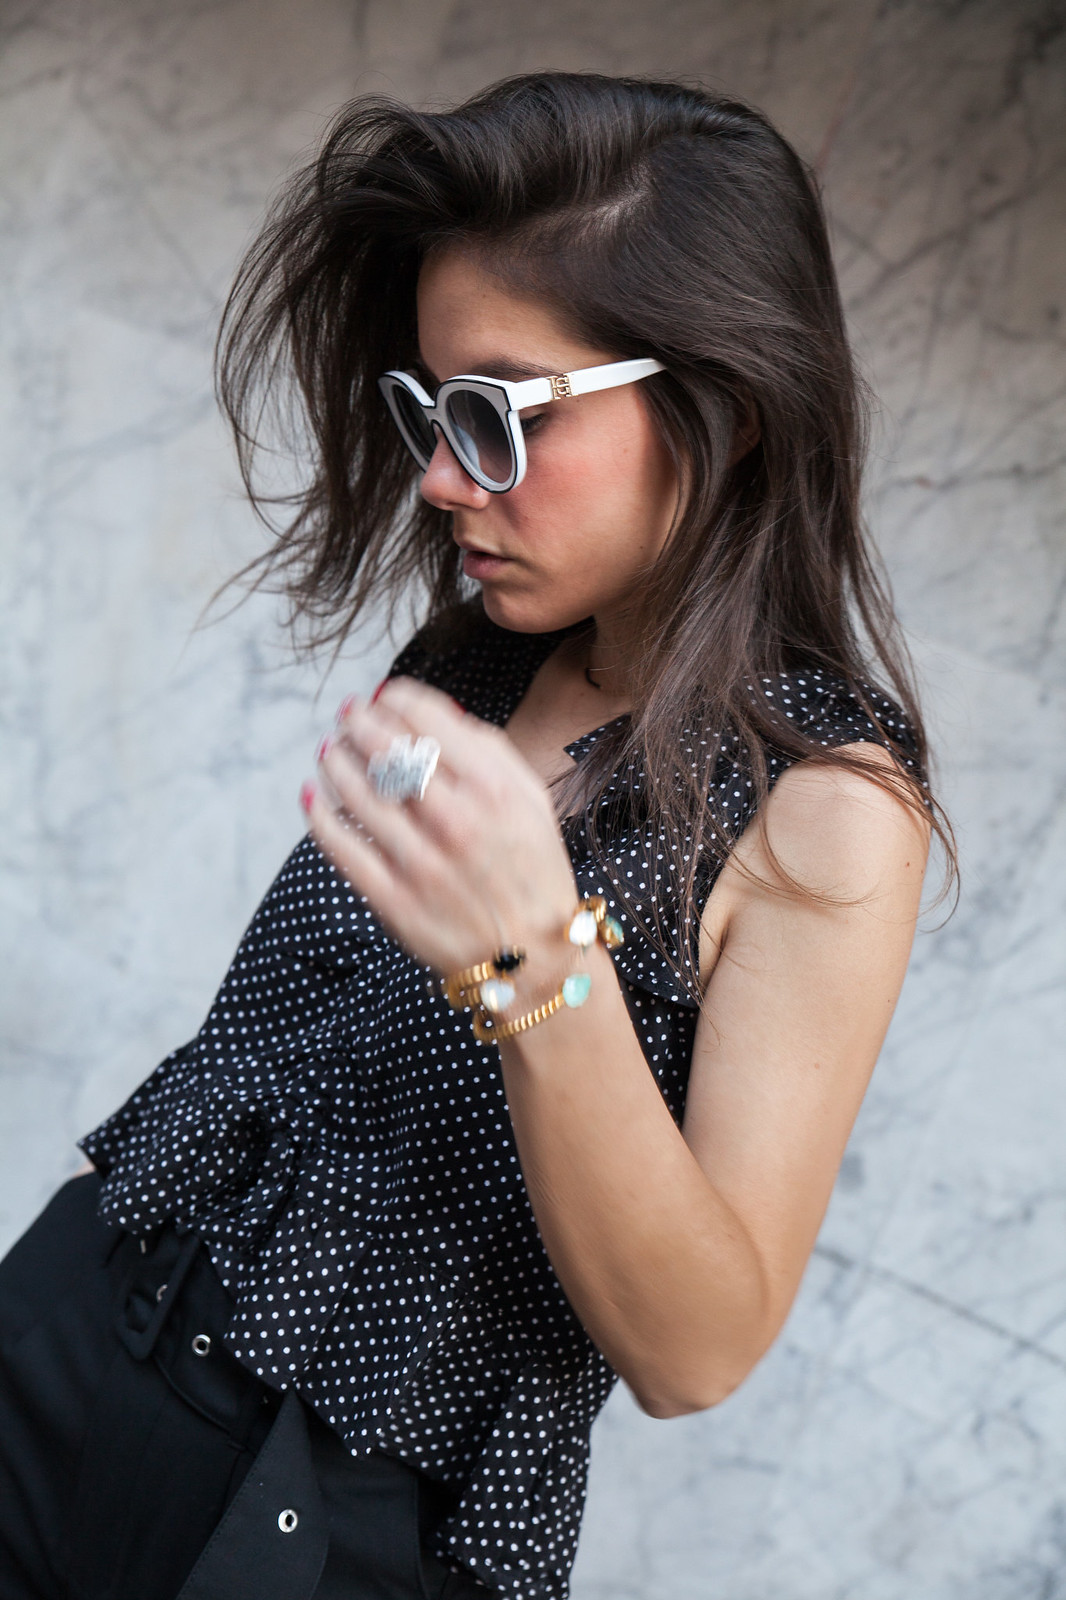 04_NA-KD_DOTS_BLACK_OUTFIT_THEGUESTGIRL_INFLUENCER_SPAIN